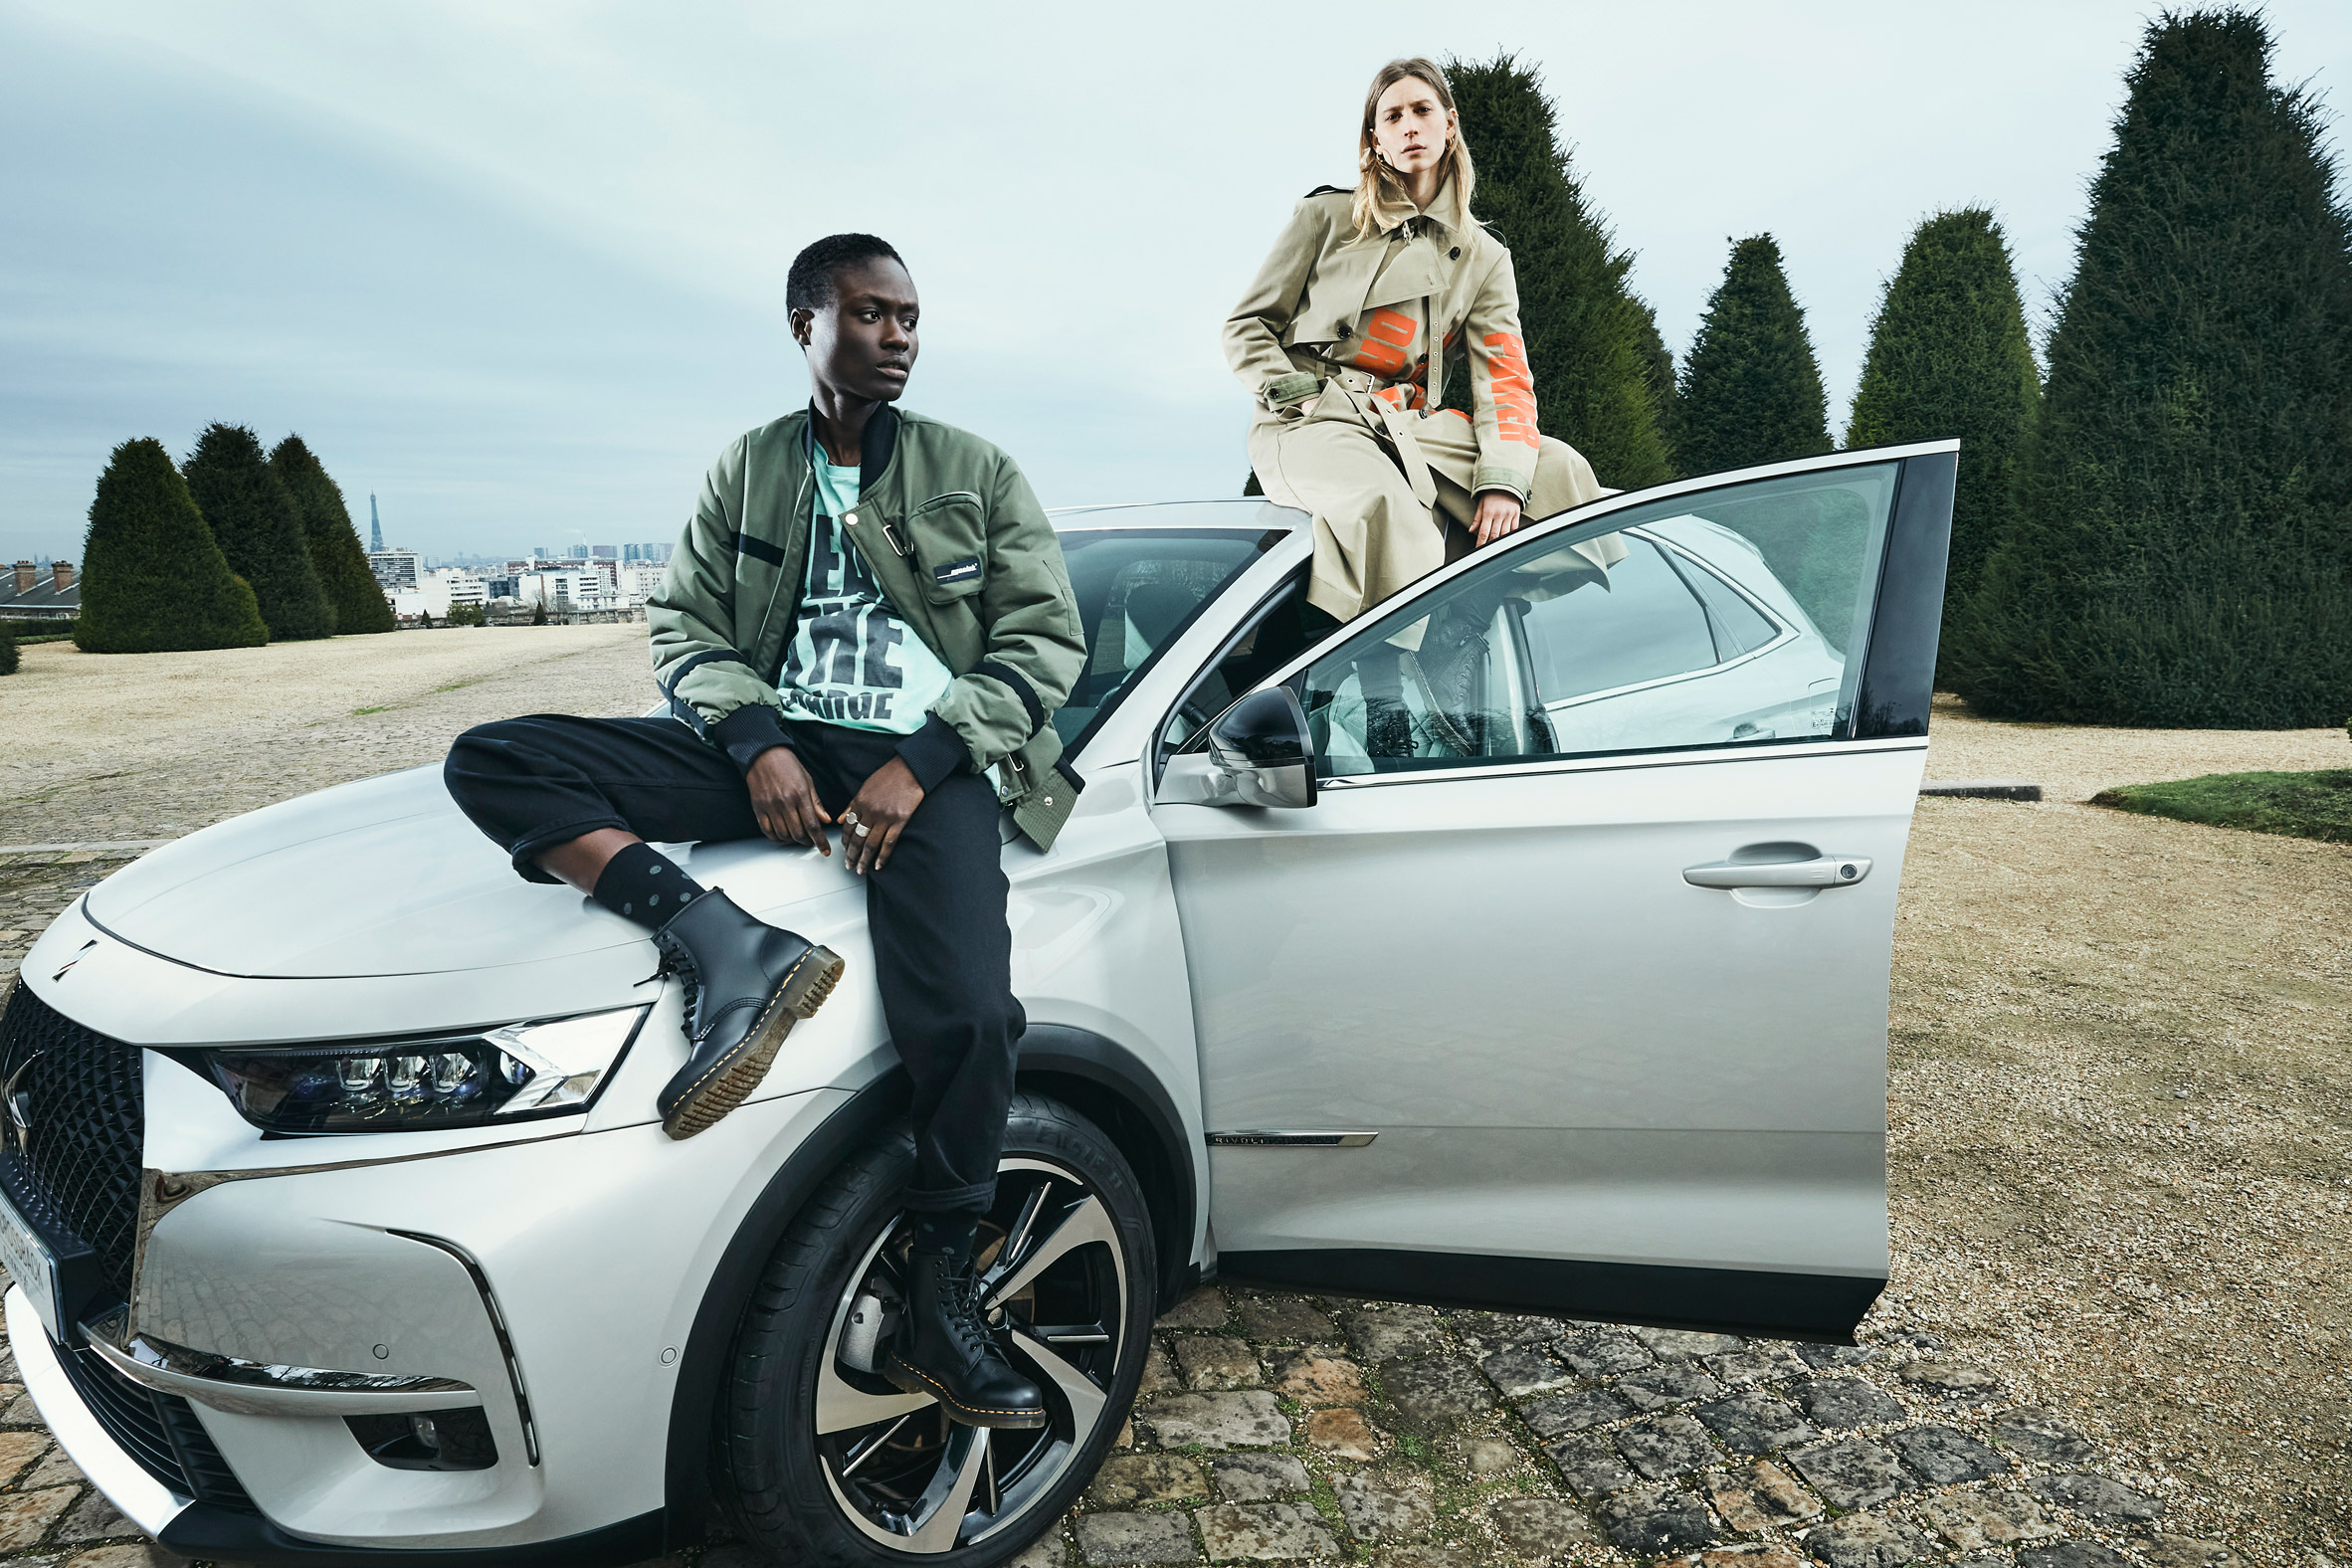 Carbon capturing clothing from capsule collection by EgonLab and Post Carbon Lab in collaboration with DS Automobiles